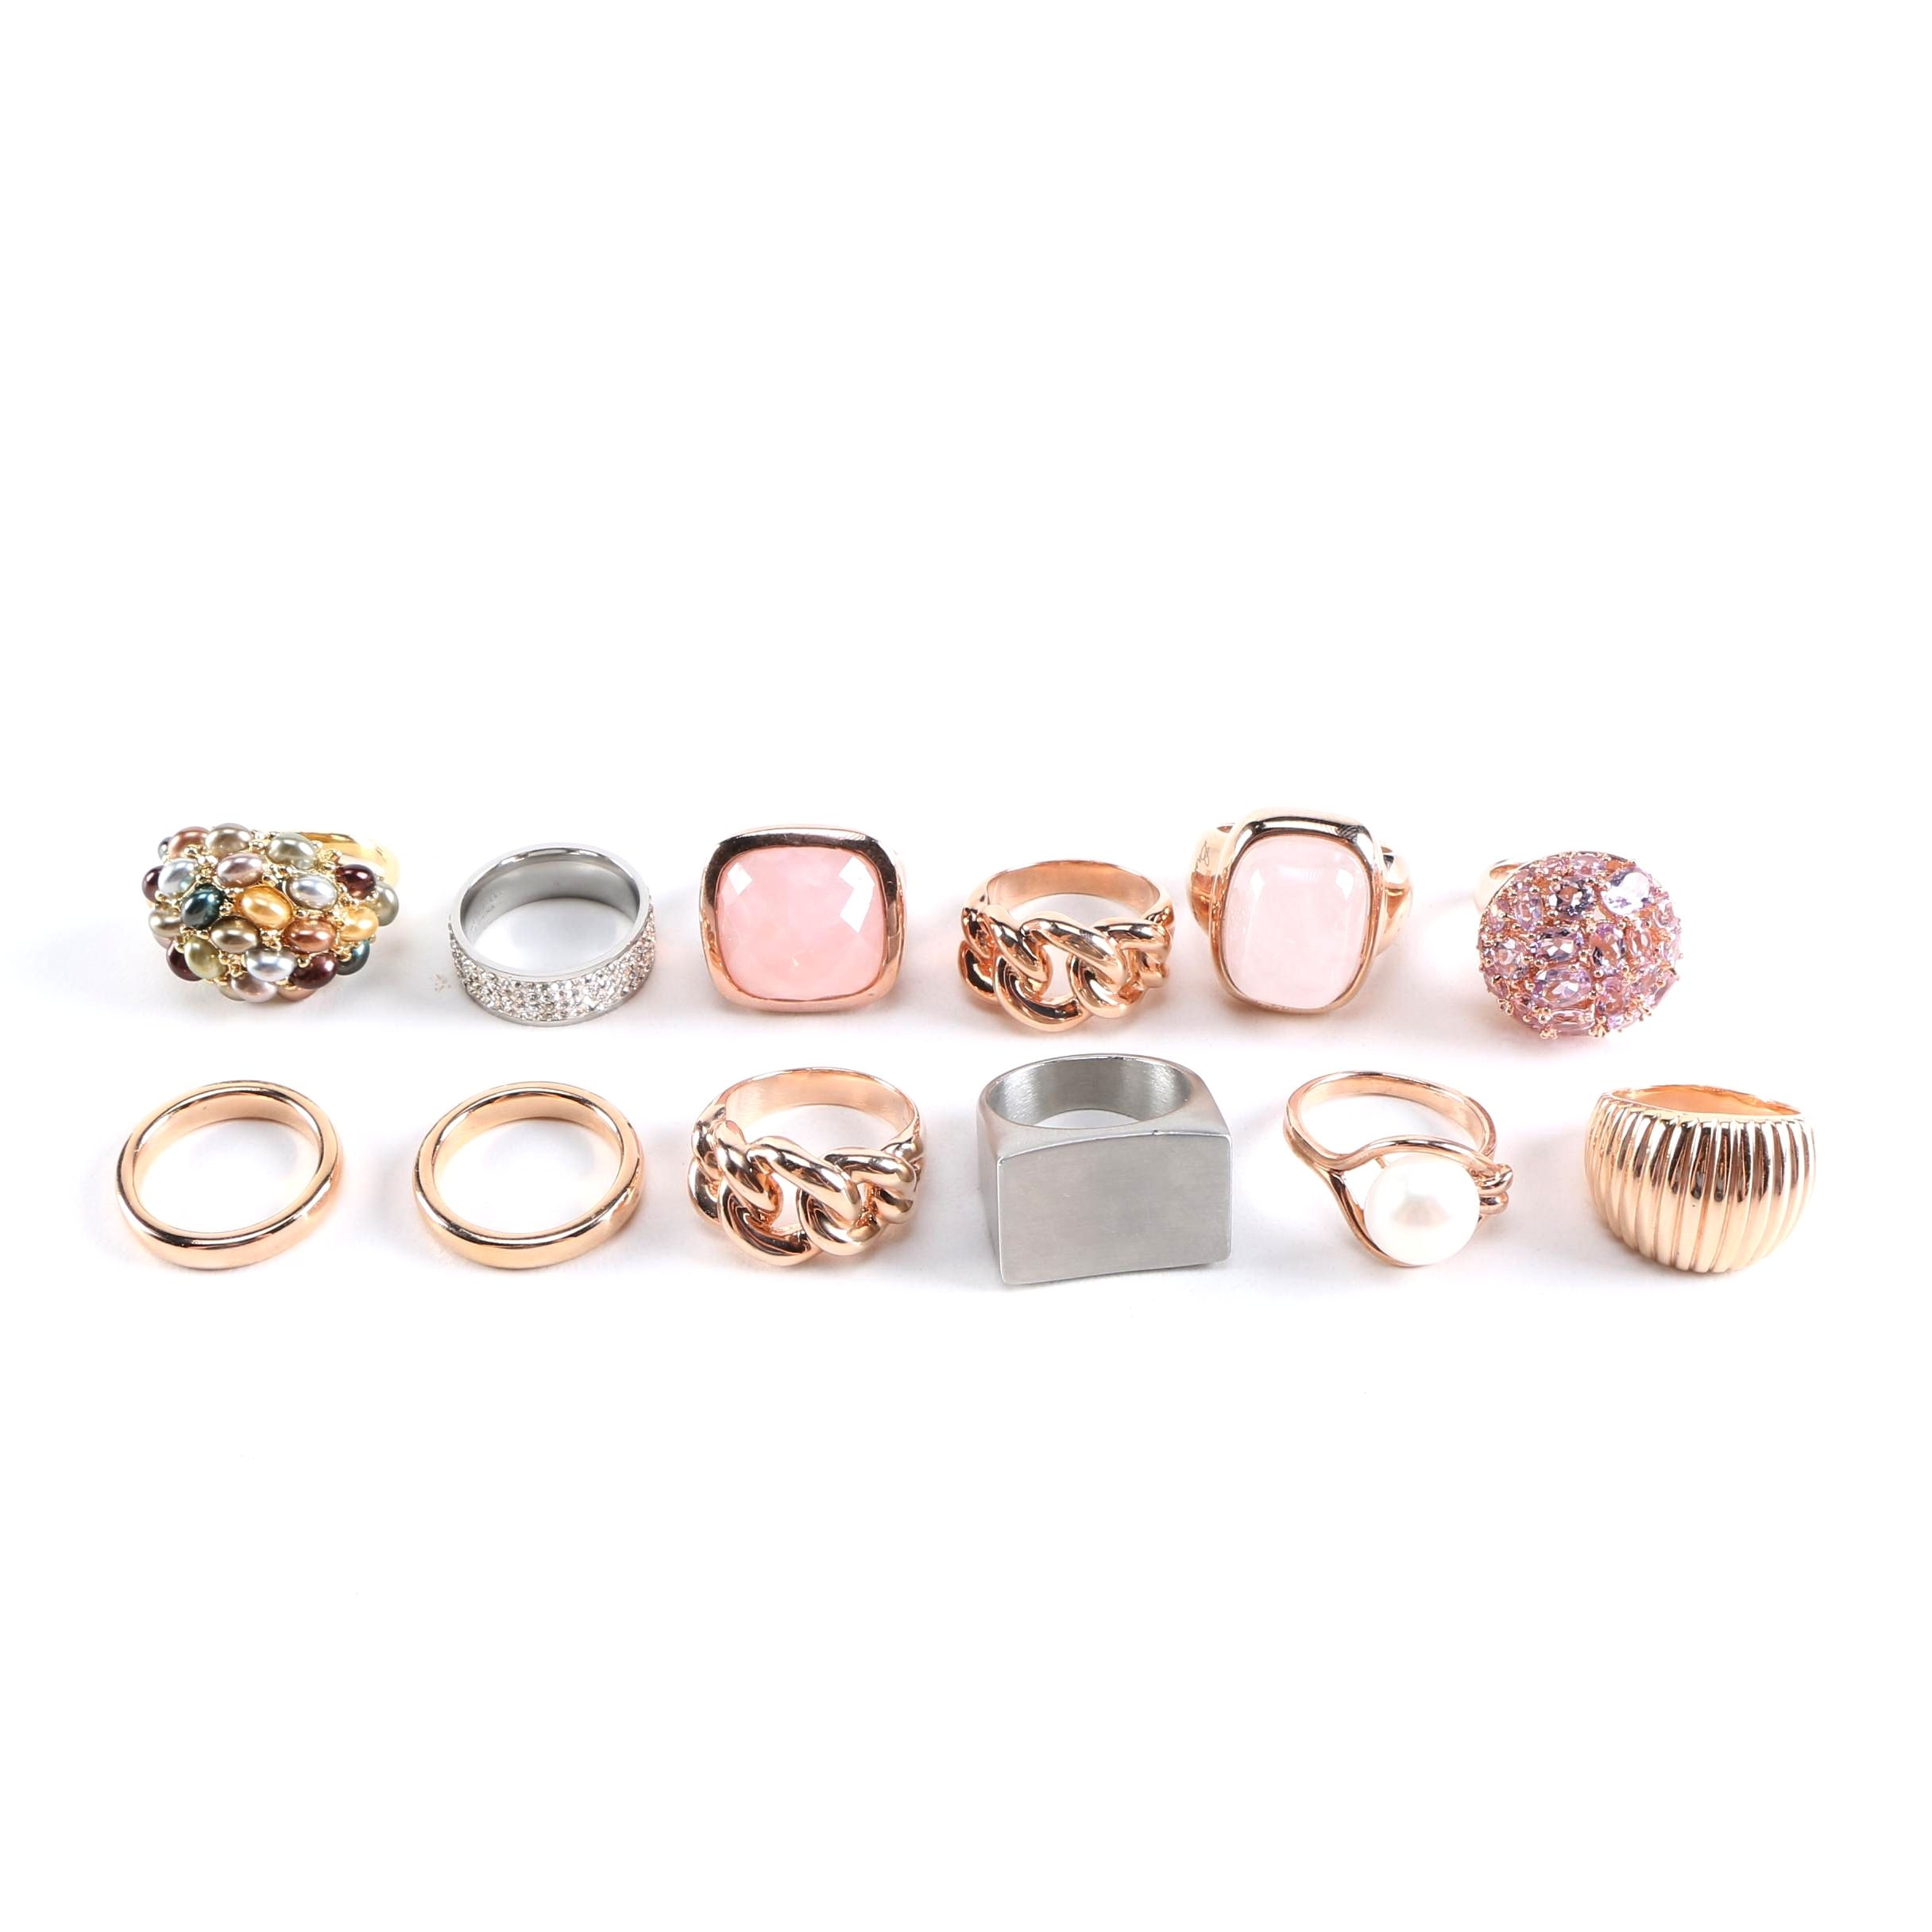 Stainless Steel and Bronze Rings With Gemstones, Pearls, and Glass Featuring Milor, Kenneth Jay Lane, and Bronzallure